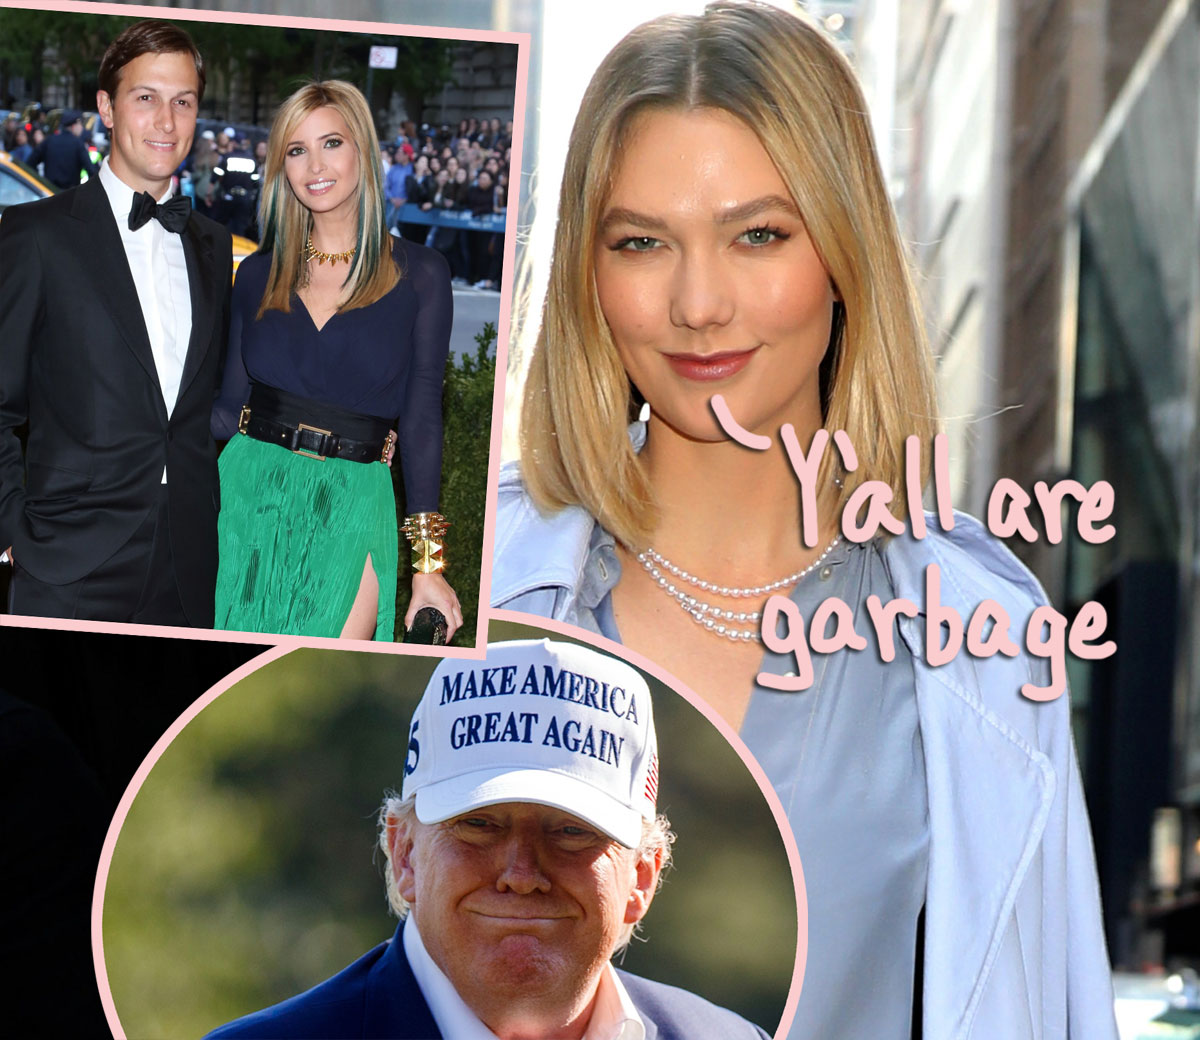 Karlie Kloss Says She's 'Tried' To Persuade Ivanka Trump & Jared Kushner To Accept The 2020 Election